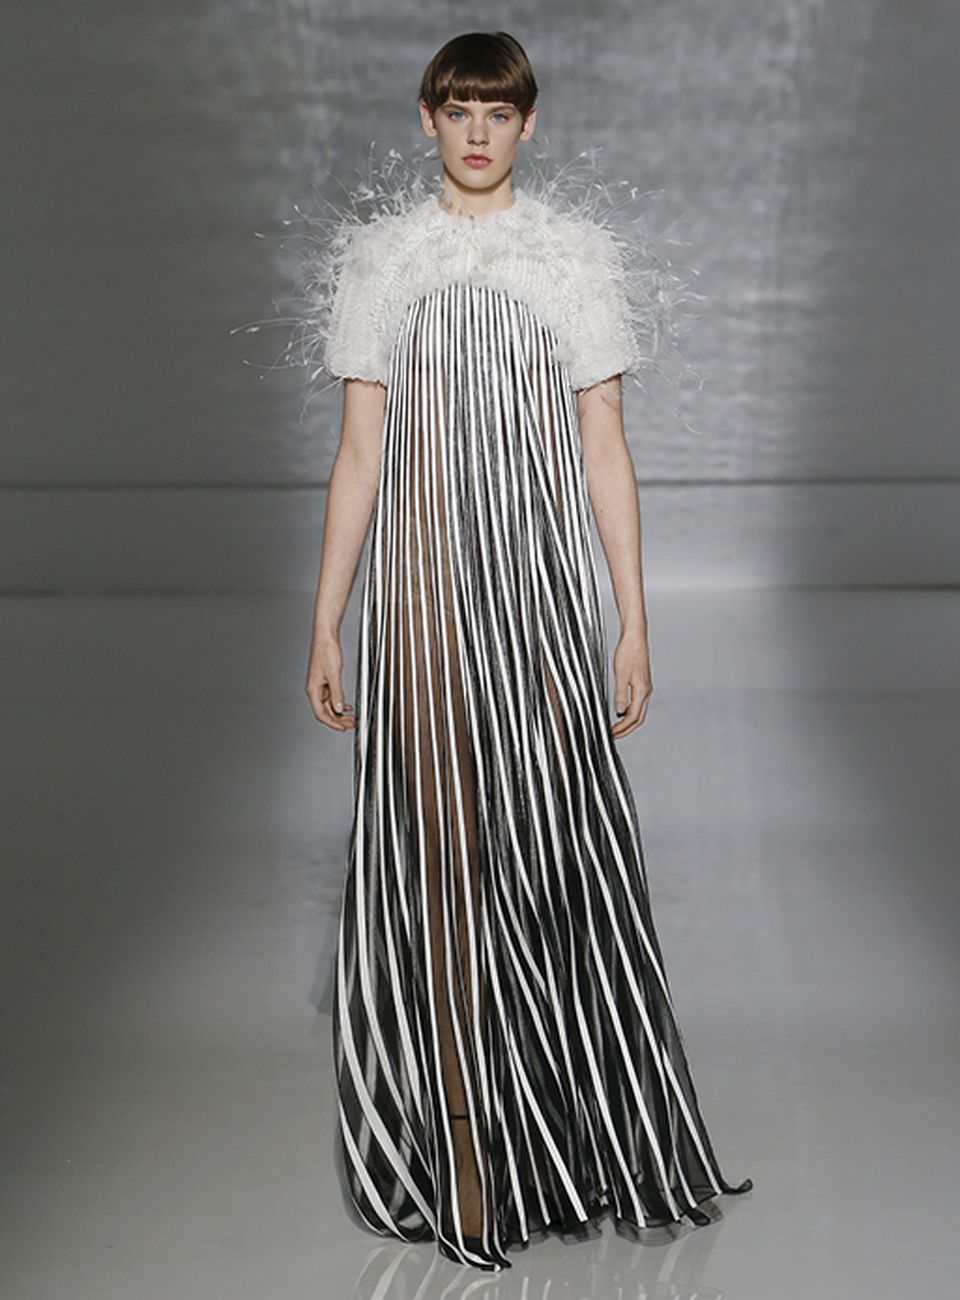 383a285e40 Givenchy, Haute Couture, SS 2019. Courtesy Givenchy